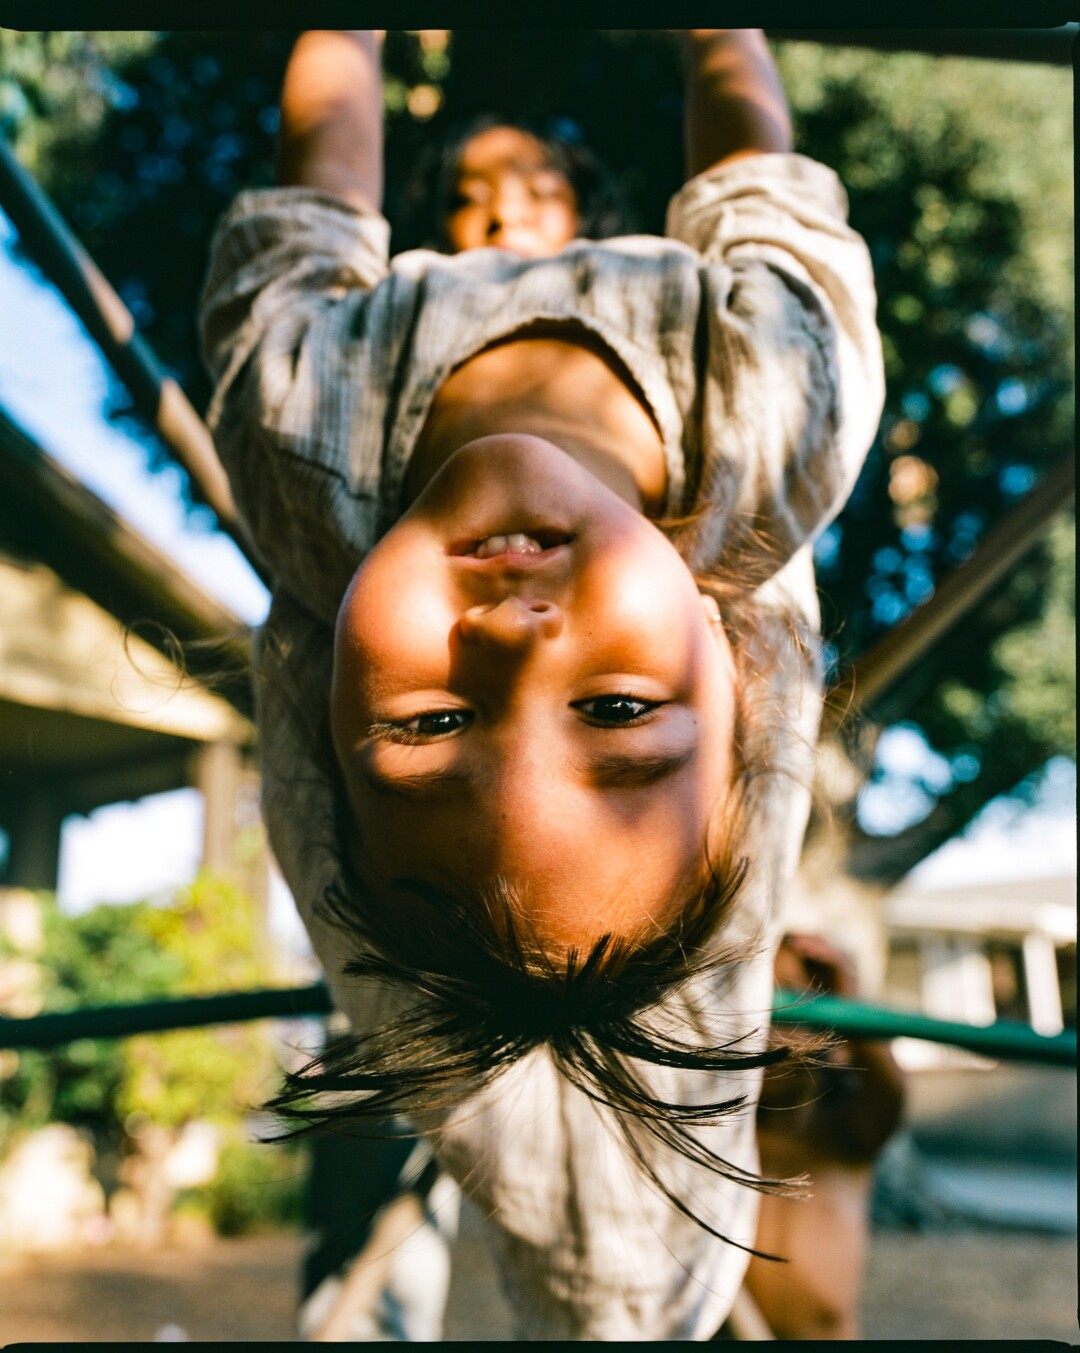 Synmia's daughter upside down on a jungle gym